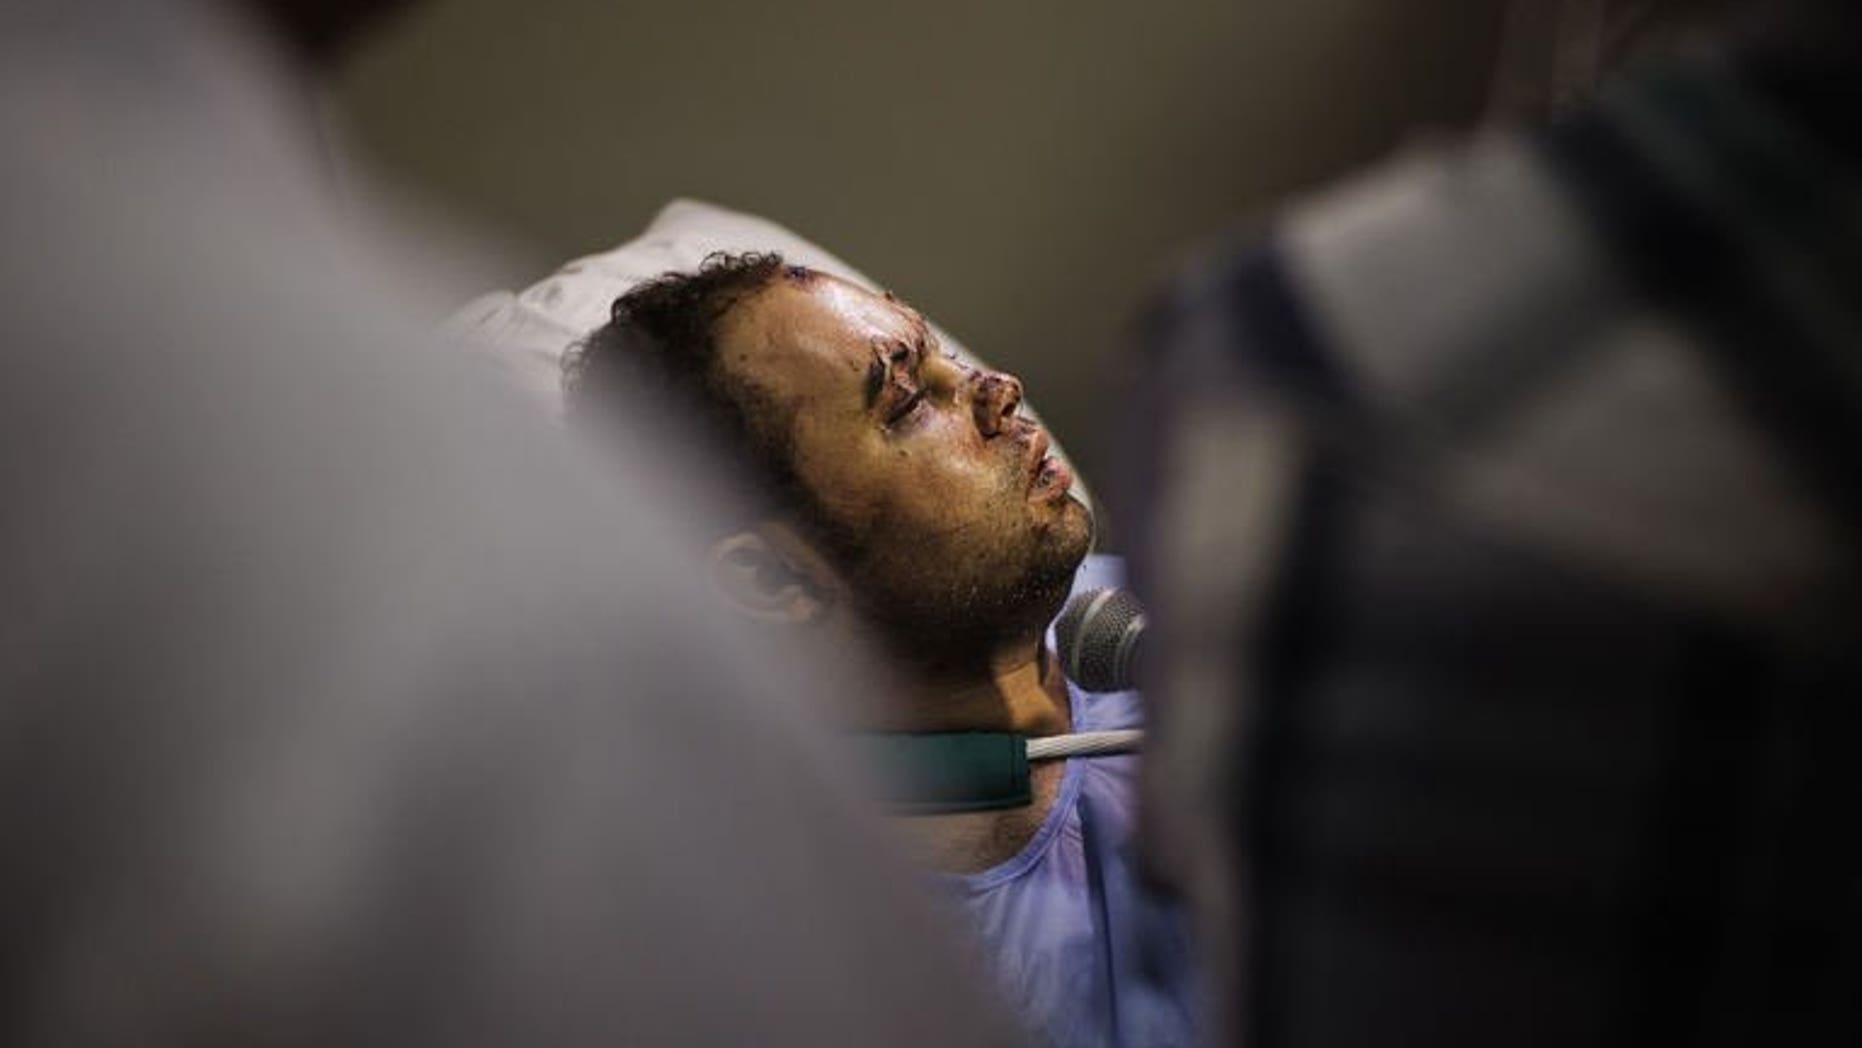 International and local media interview an Egyptian police officer lying on his hospital bed on August 18, 2013 as he recovers from gunshots wounds sustained during clashes with supporters of ousted president Mohammed Morsi, in Cairo. An Islamist alliance opposed to the Egyptian military's ouster of president Mohamed Morsi called off rallies that they planned to stage in Cairo on Sunday.